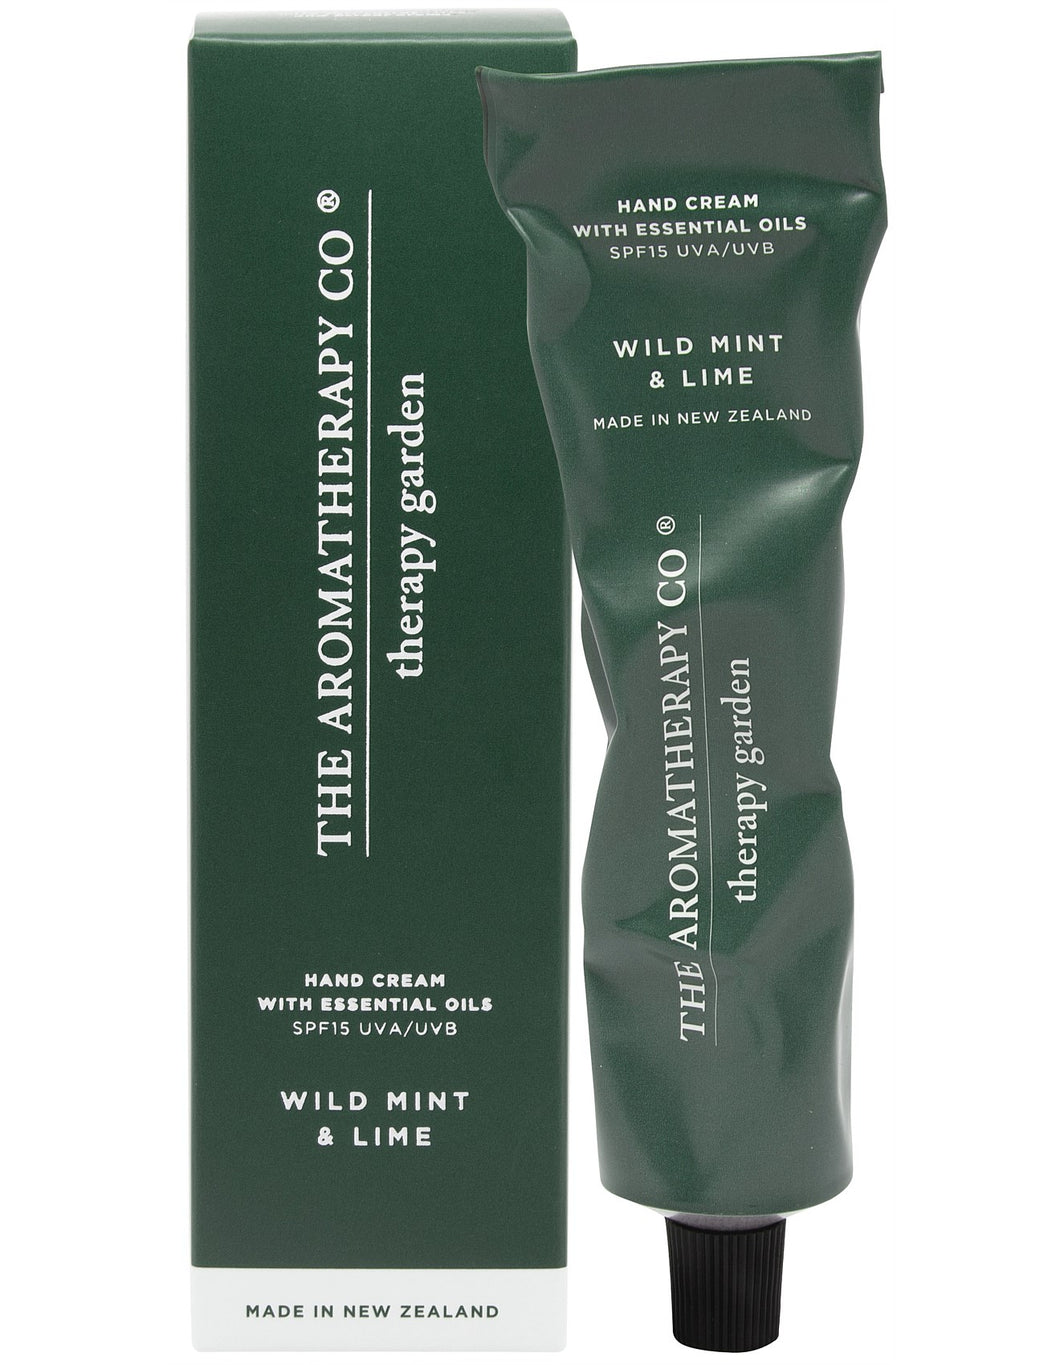 Therapy Garden Hand Cream | Wild Mint & Lime